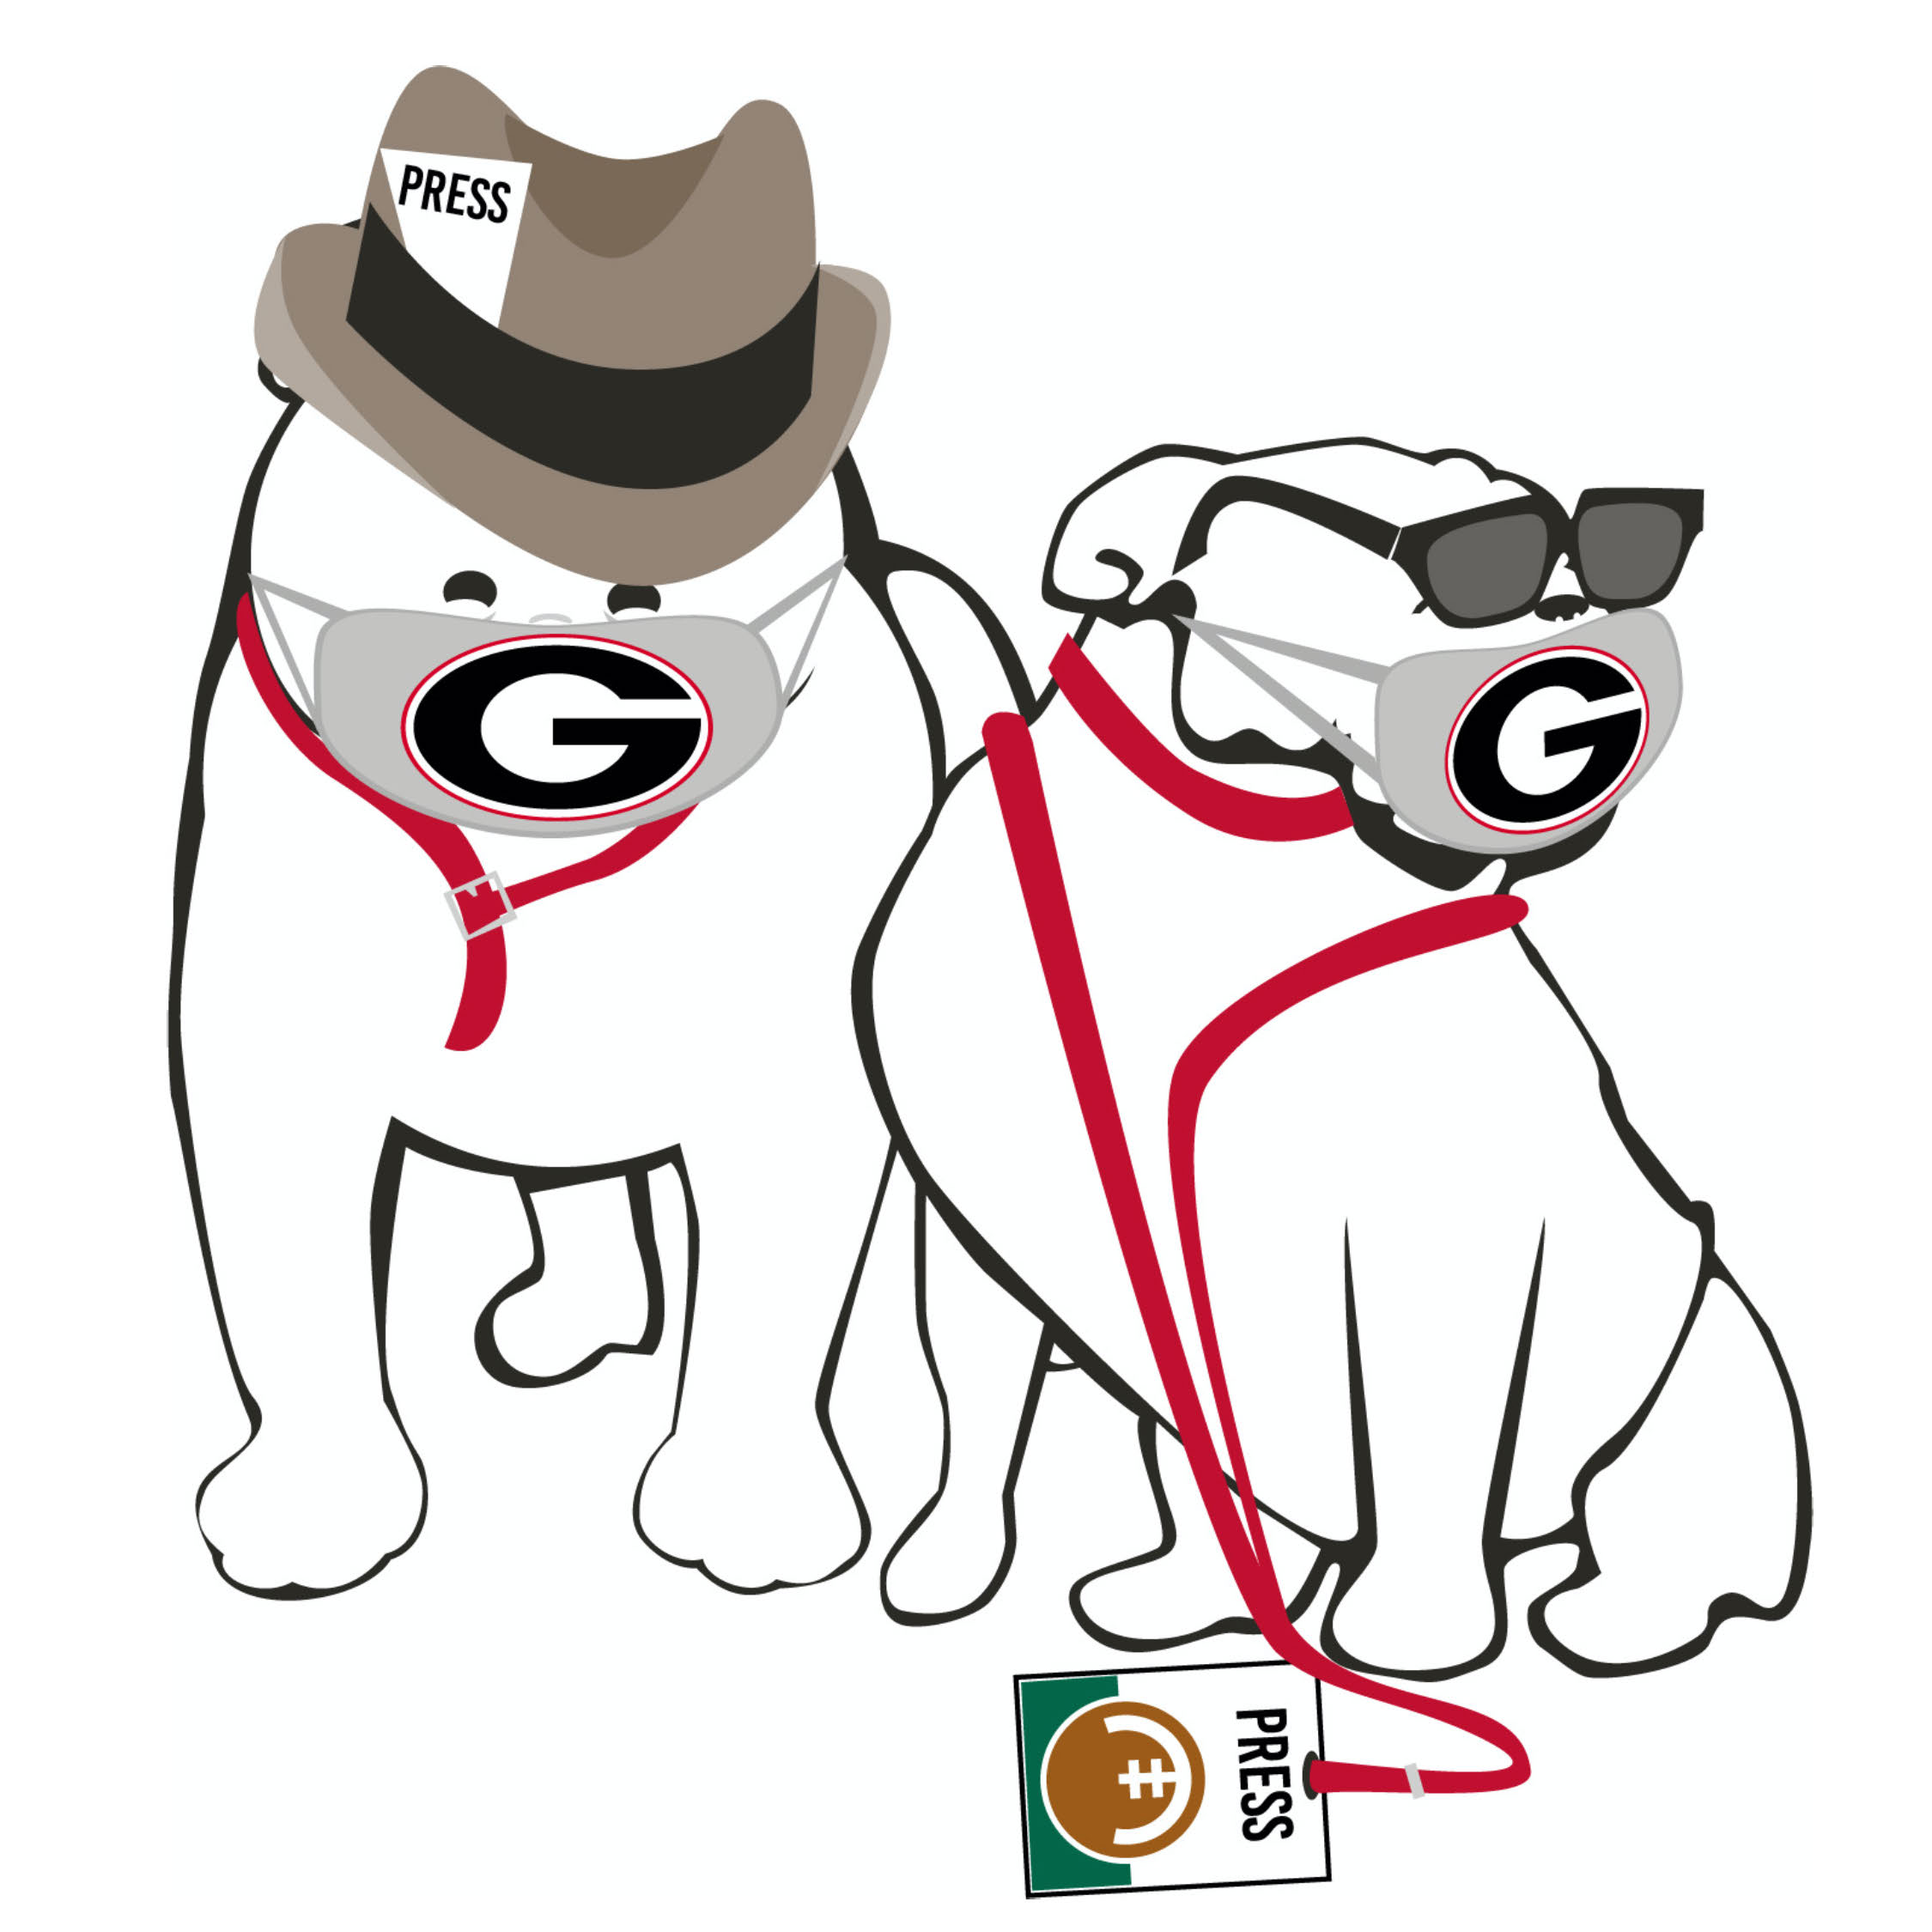 Bulldogs with face masks and press hats